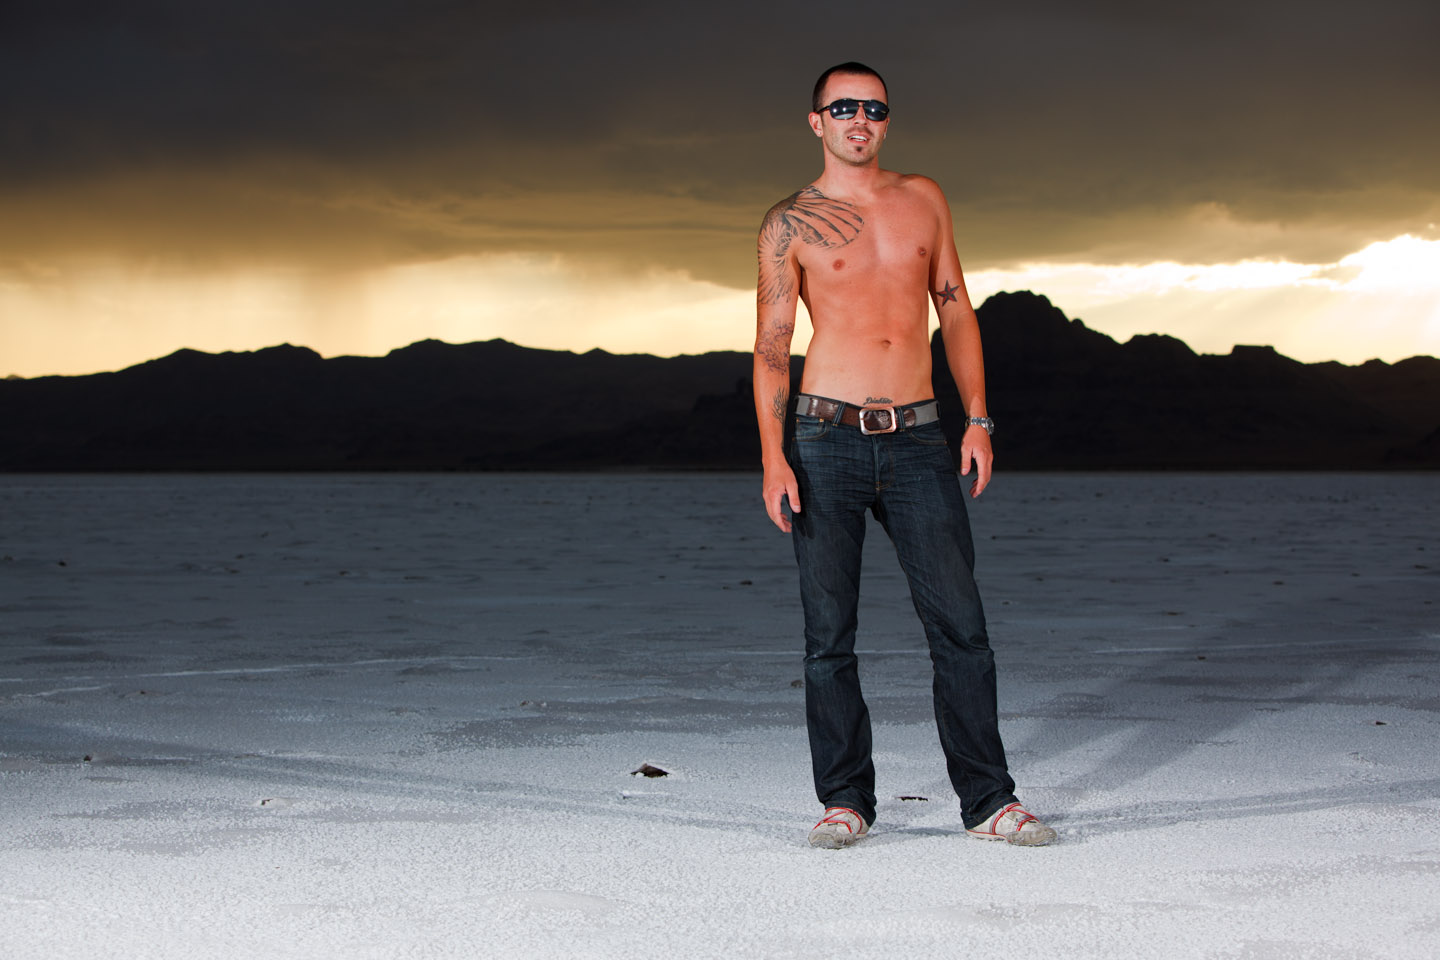 Storms on the Bonneville Salt Flats can mean amazing portraits